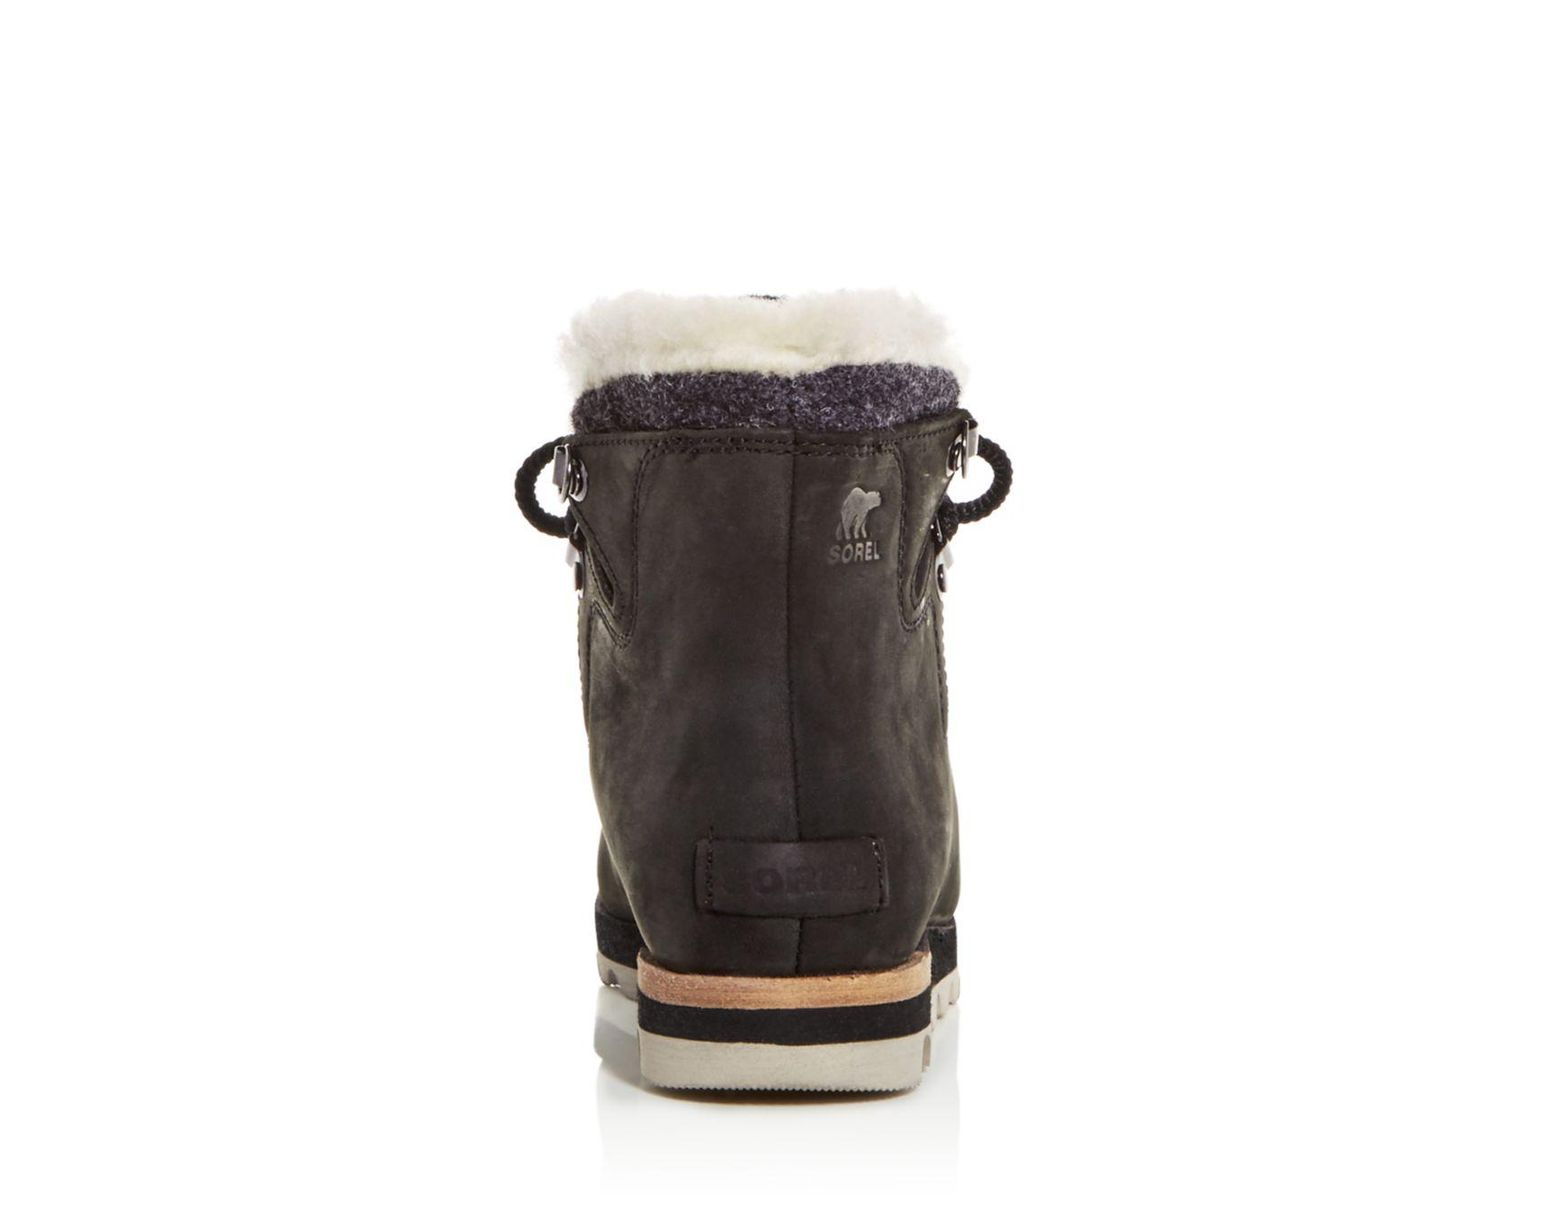 2feb9ab1c82 Sorel Women's Sneakchic Alpine Holiday Shearling Waterproof Cold - Weather  Boots in Black - Lyst